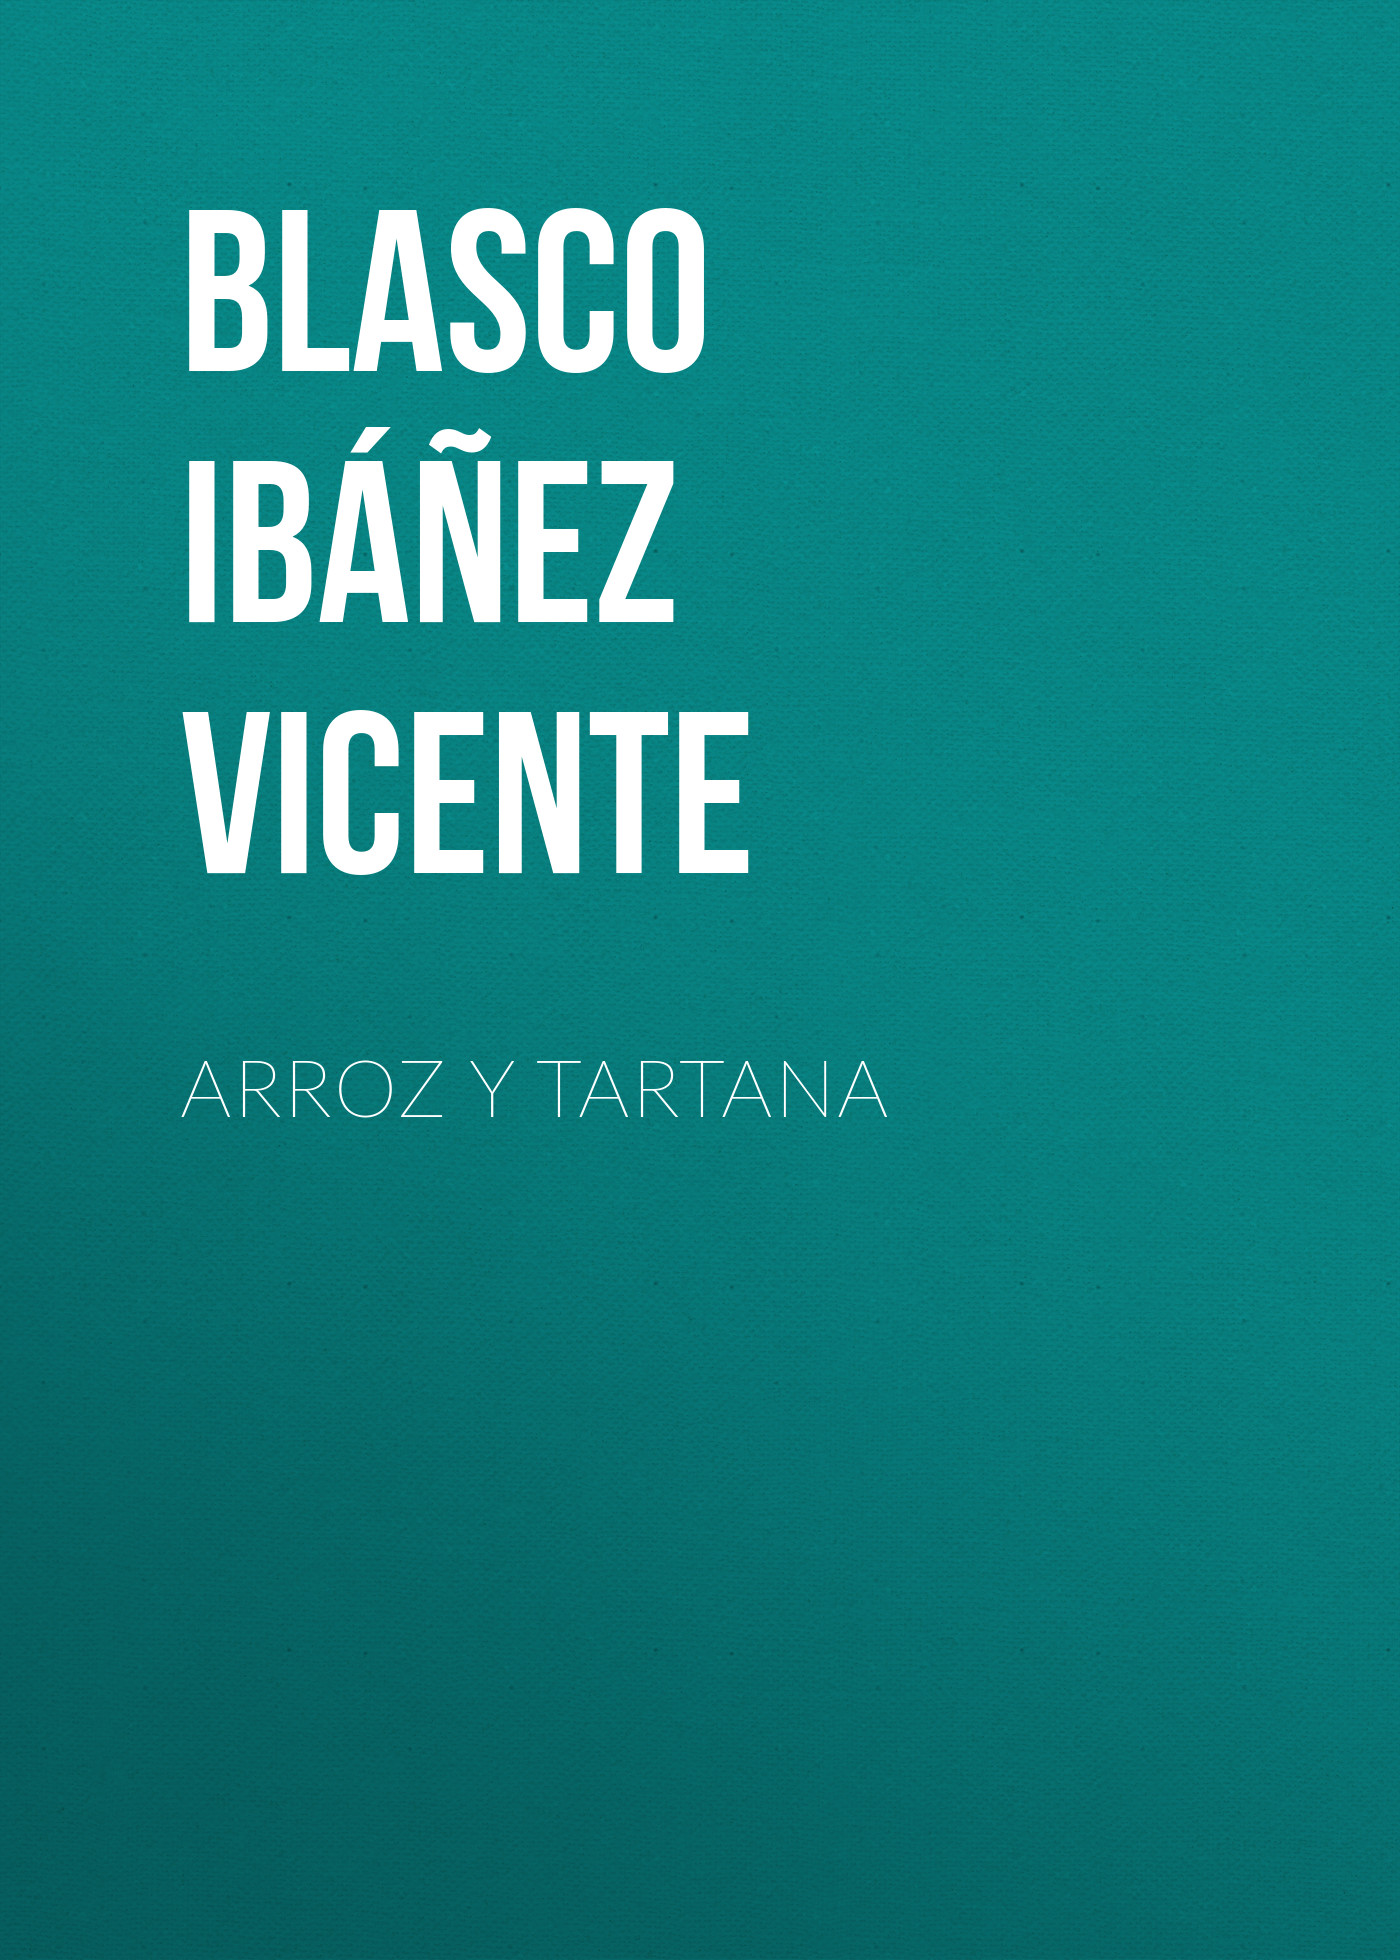 цена на Blasco Ibáñez Vicente Arroz y tartana